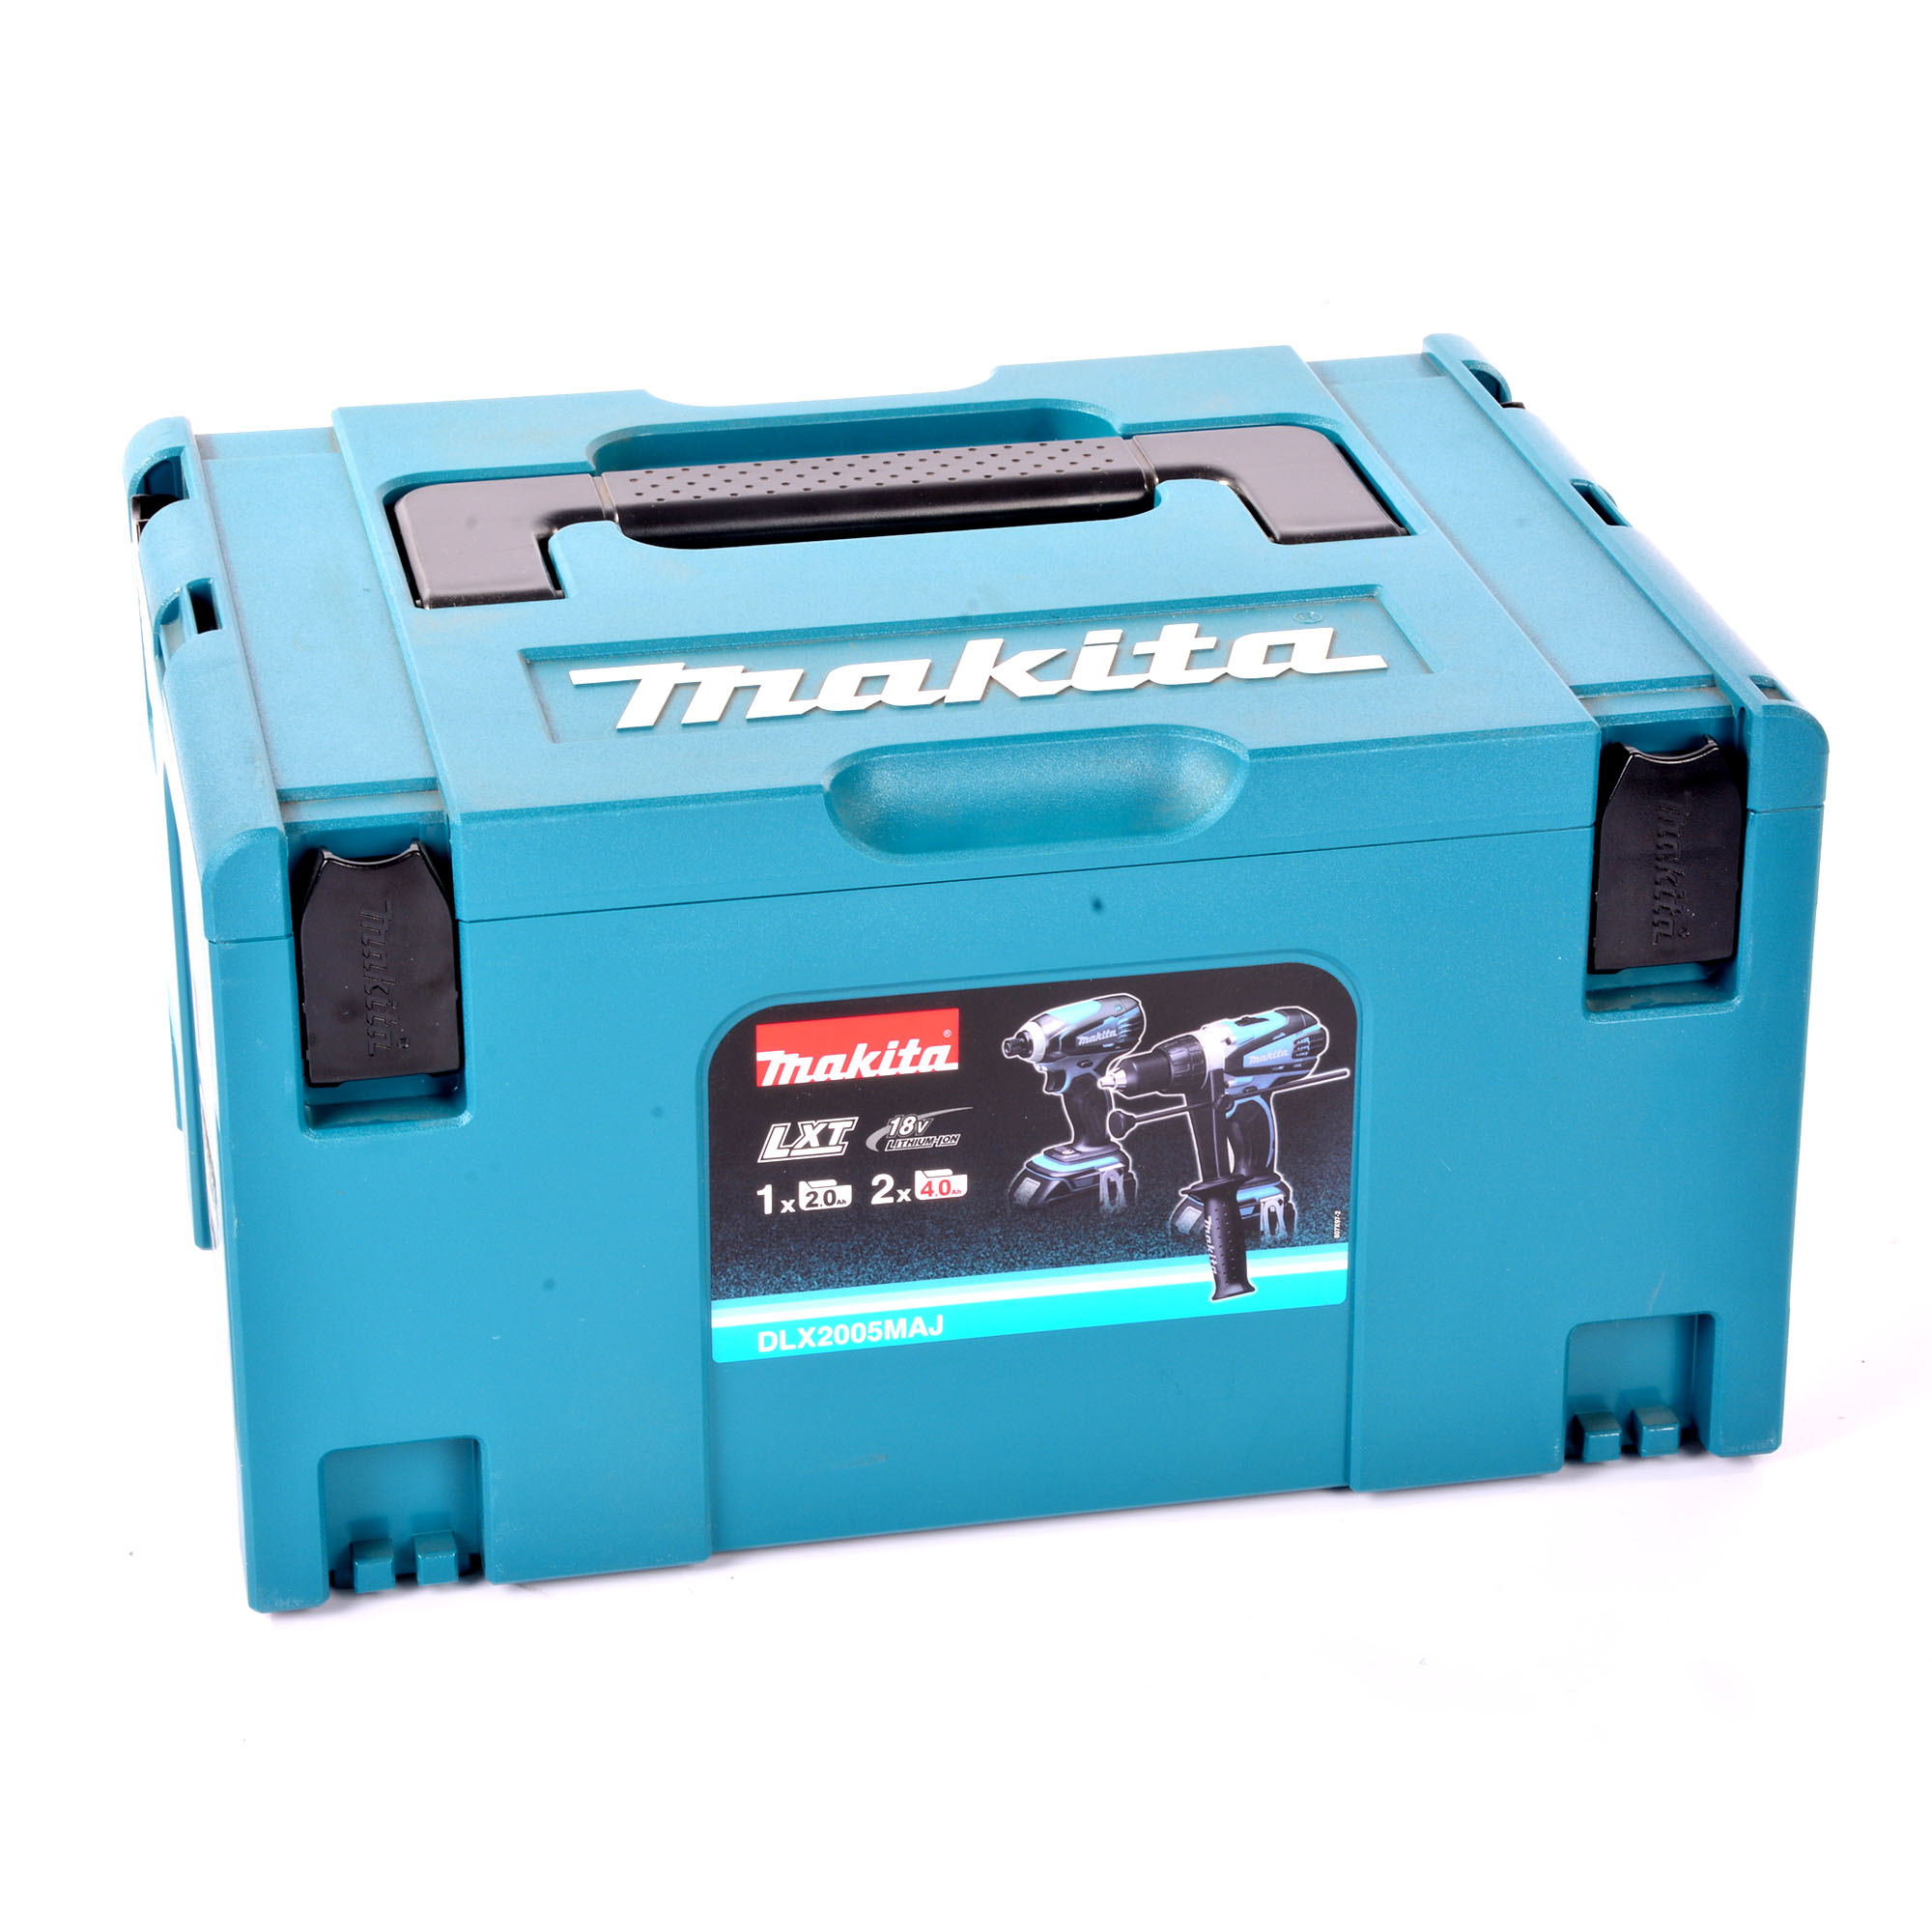 makita dlx2005maj makita 18v li ion 2 piece kit. Black Bedroom Furniture Sets. Home Design Ideas